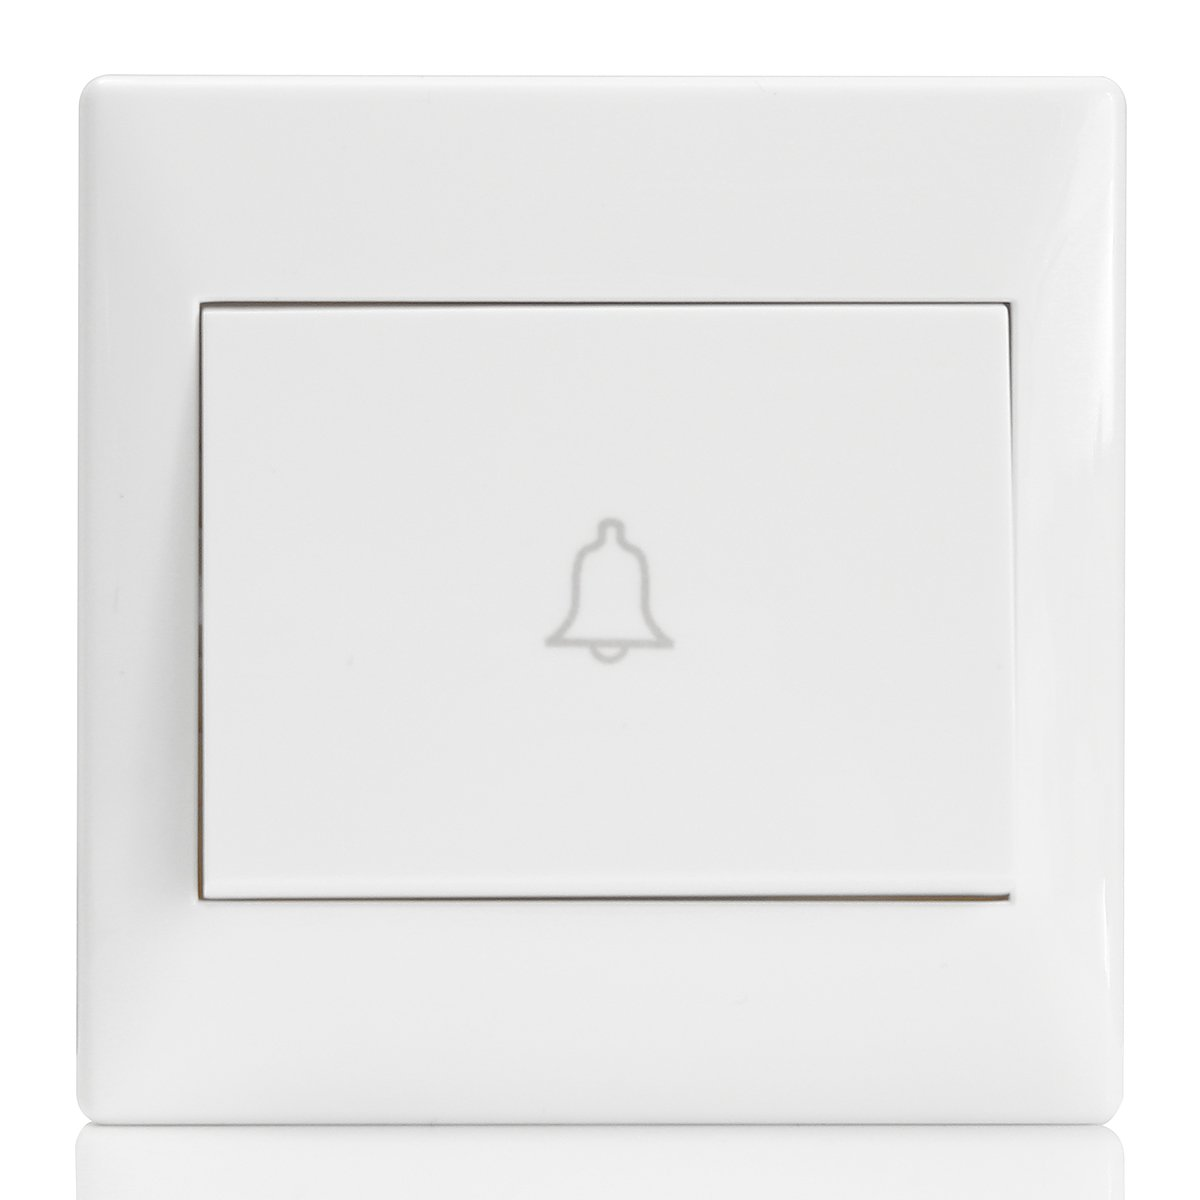 1 x 250V 10A White Door bell Switch Button Push Release Panel